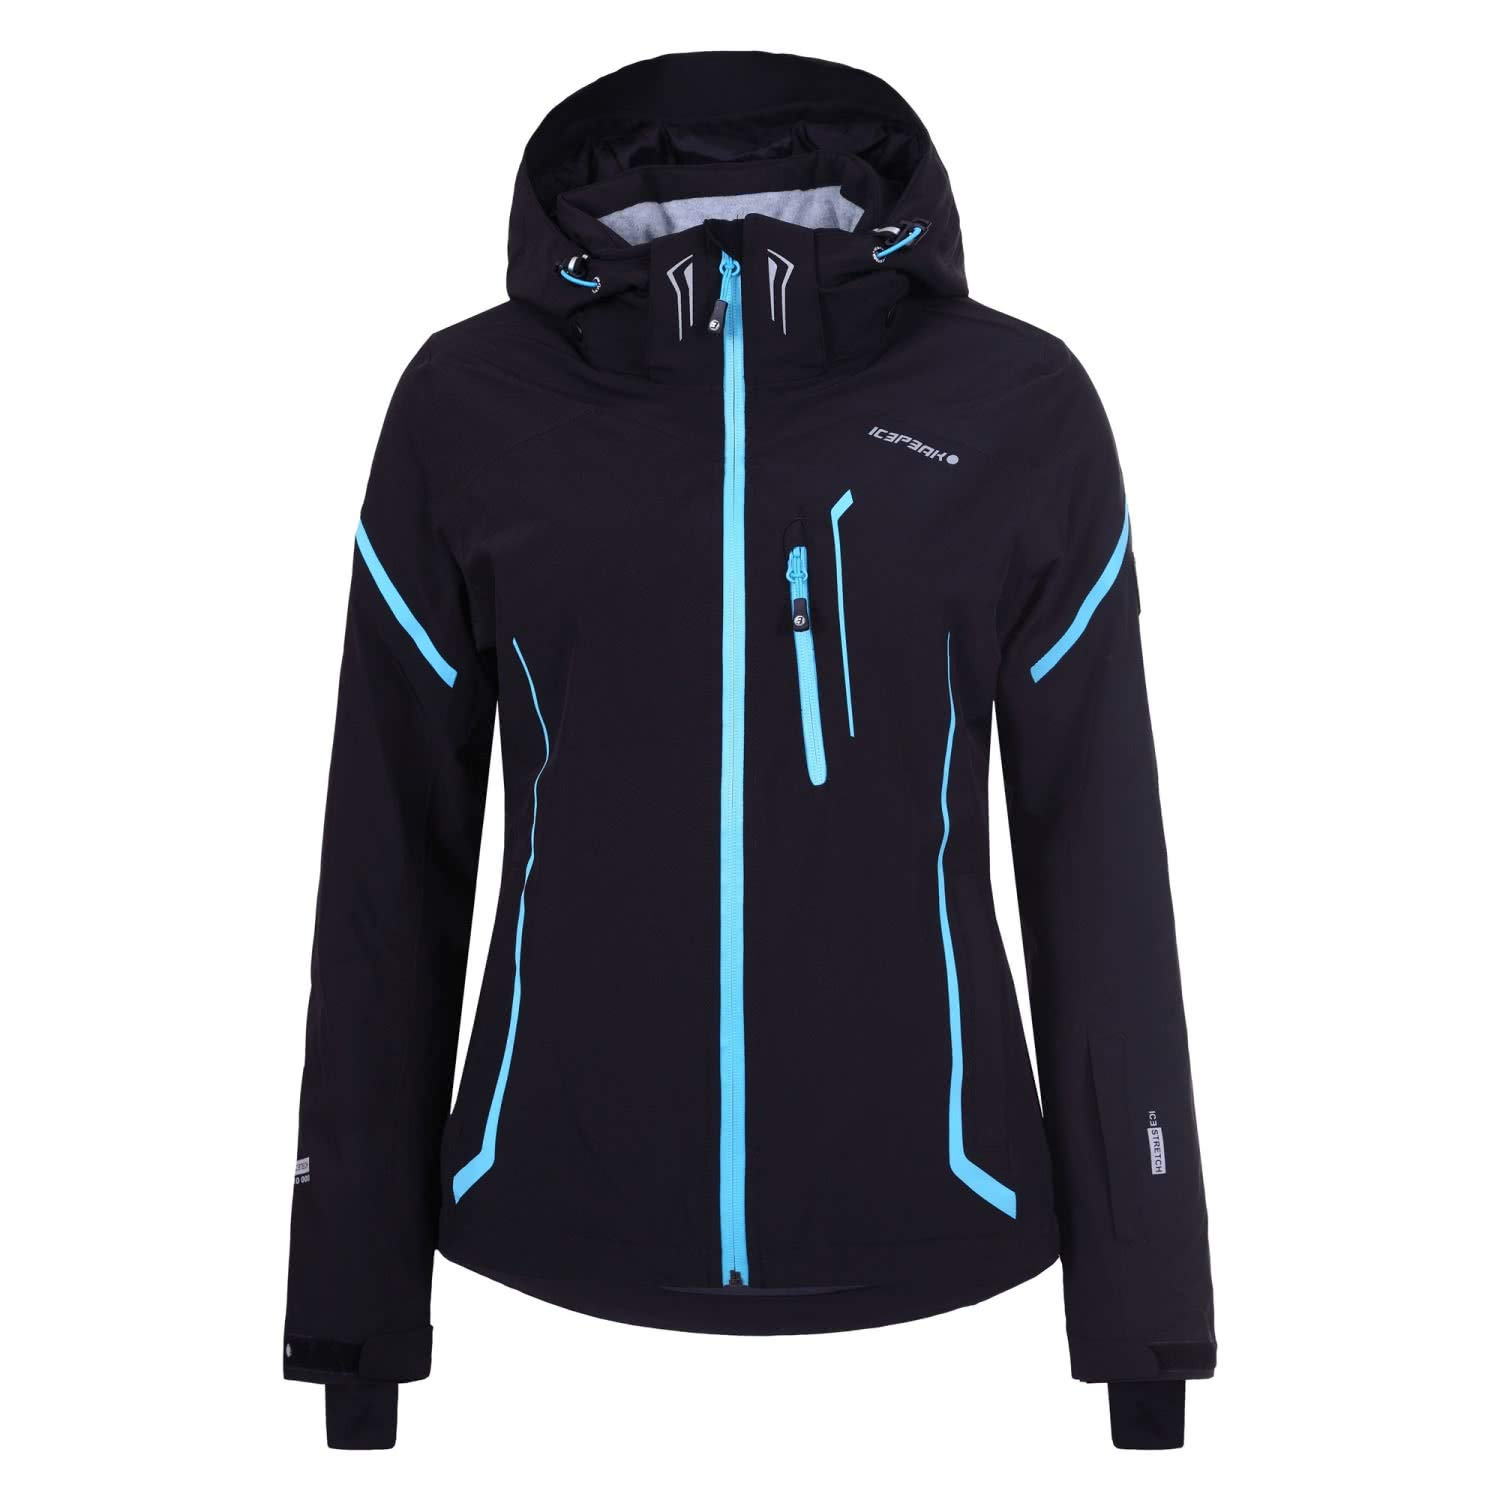 Icepeak Damen Skijacke Nickan 53113 Black 42